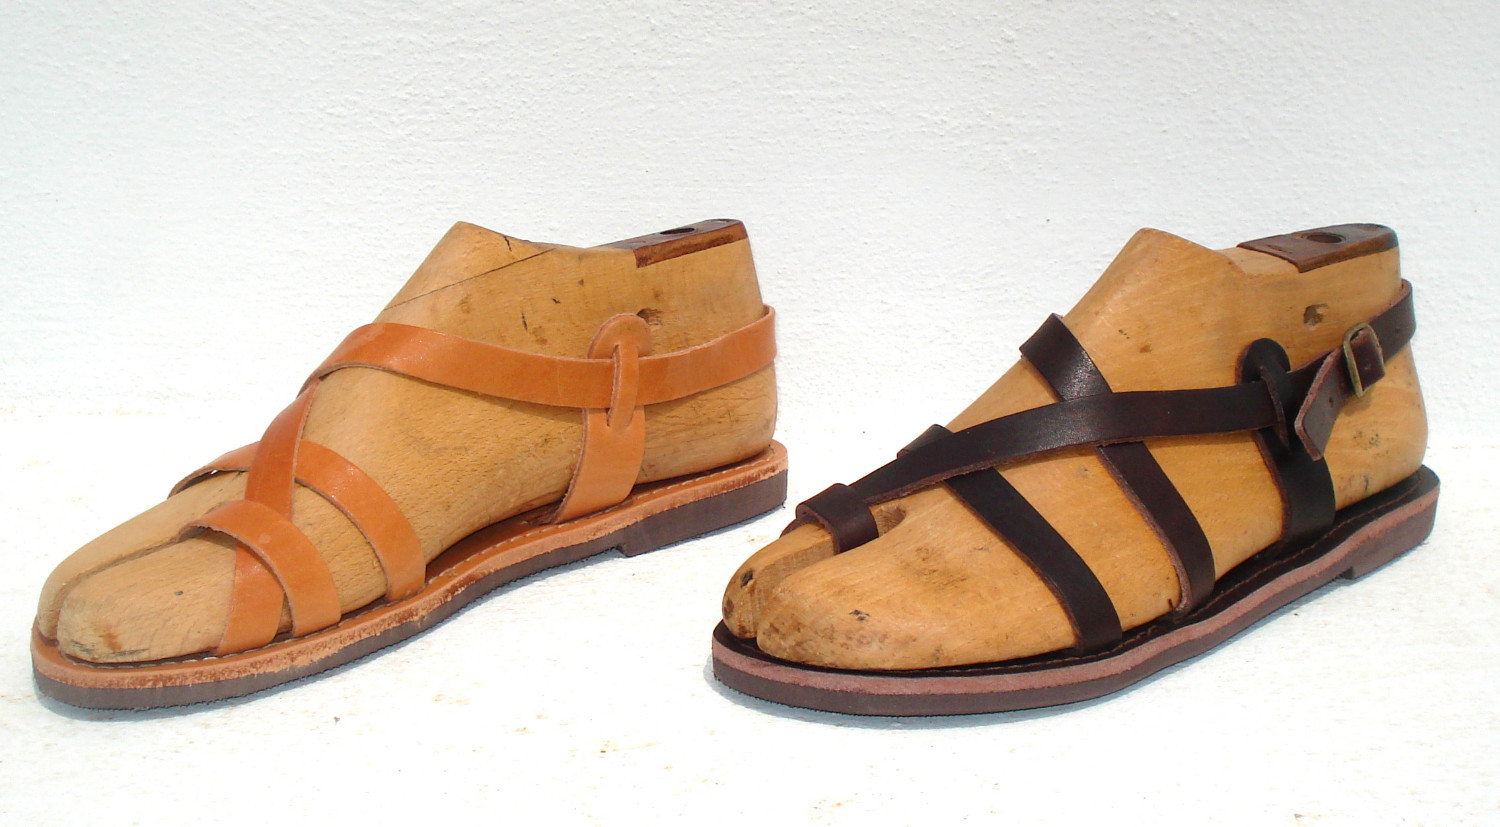 6c97eb92ccab Leather sandals from Greece - Ananias Sandals